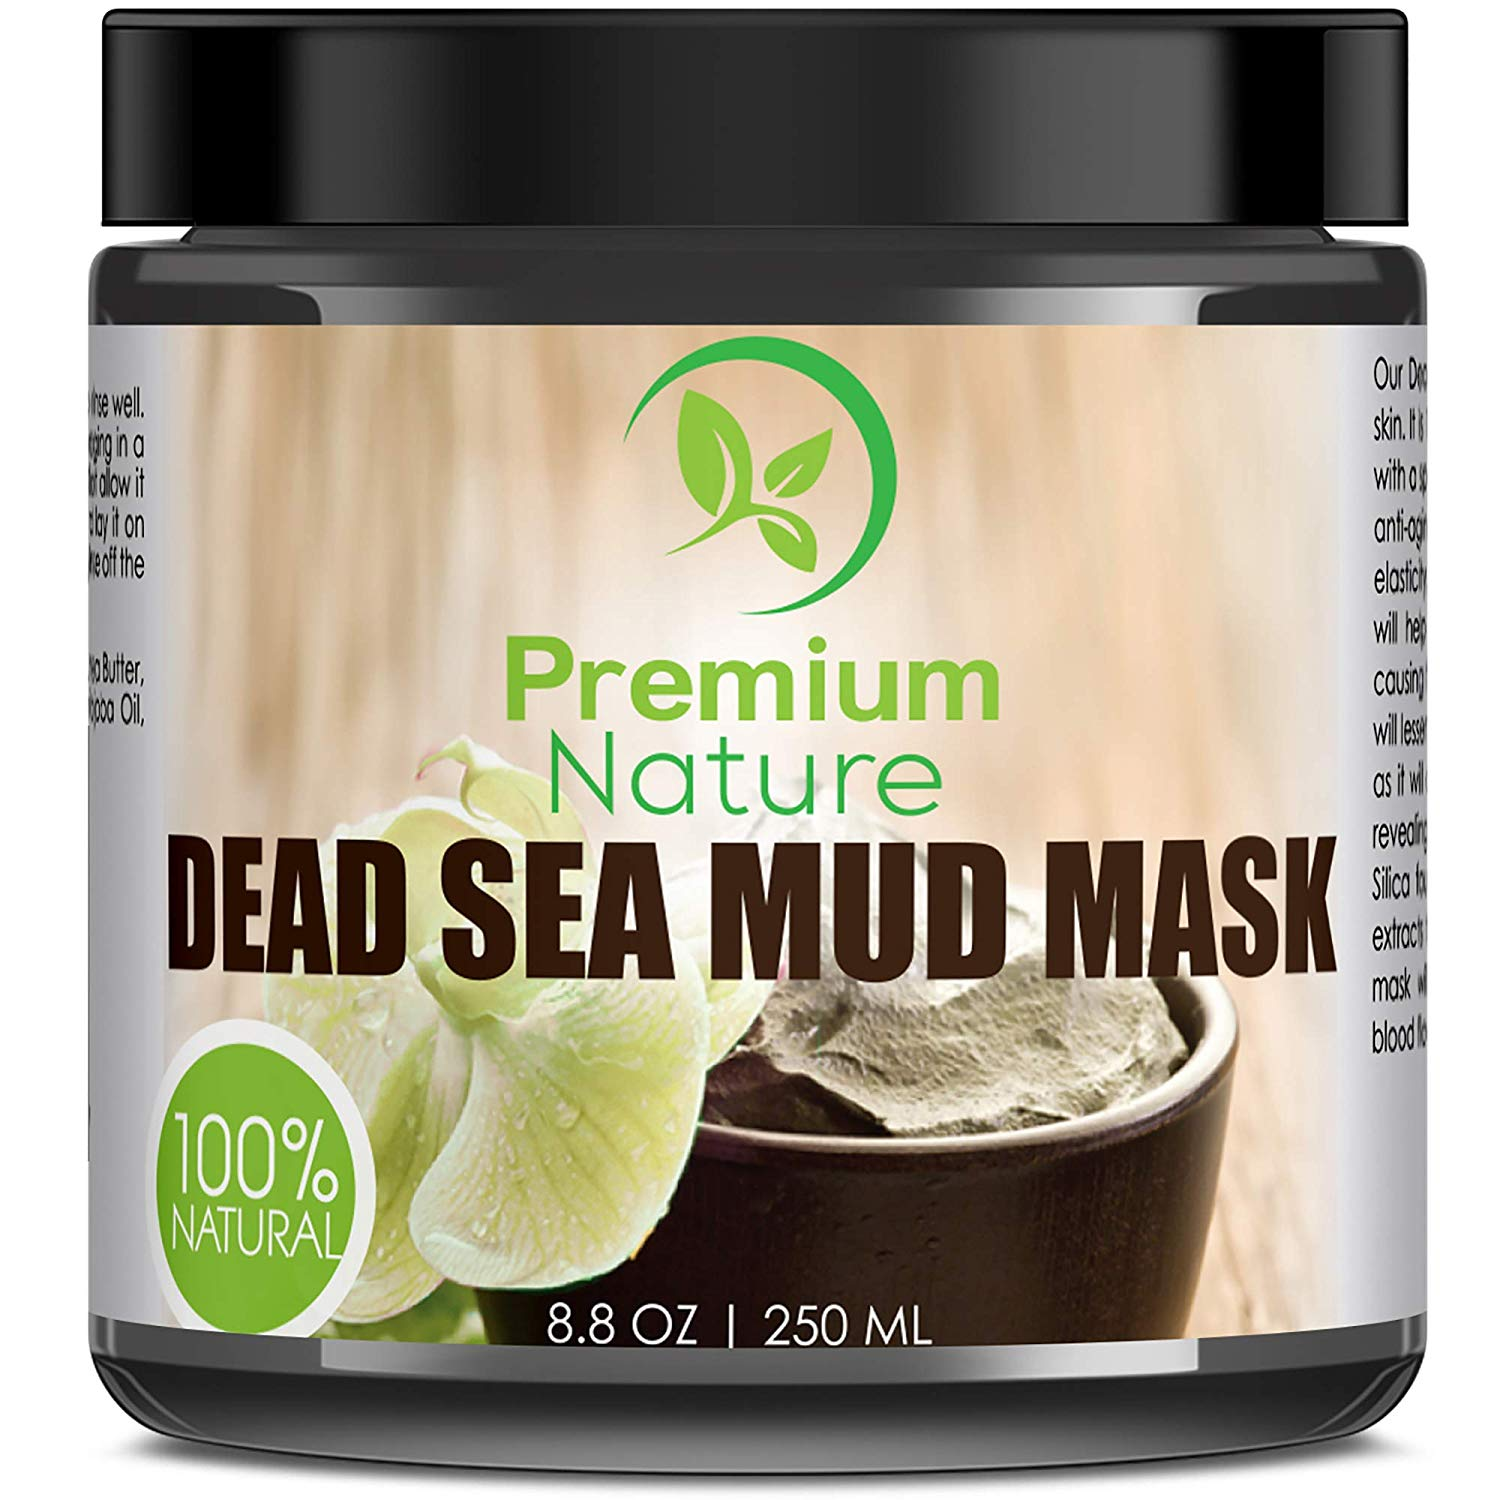 Dead Sea Mud Mask for Face and Body - 8.8 oz Melts Cellulite Treats Acne Strech Mark Removal - Deep Detox Cleaning Mask Pore Minimizer and Wrinkle Reducer - Natural...